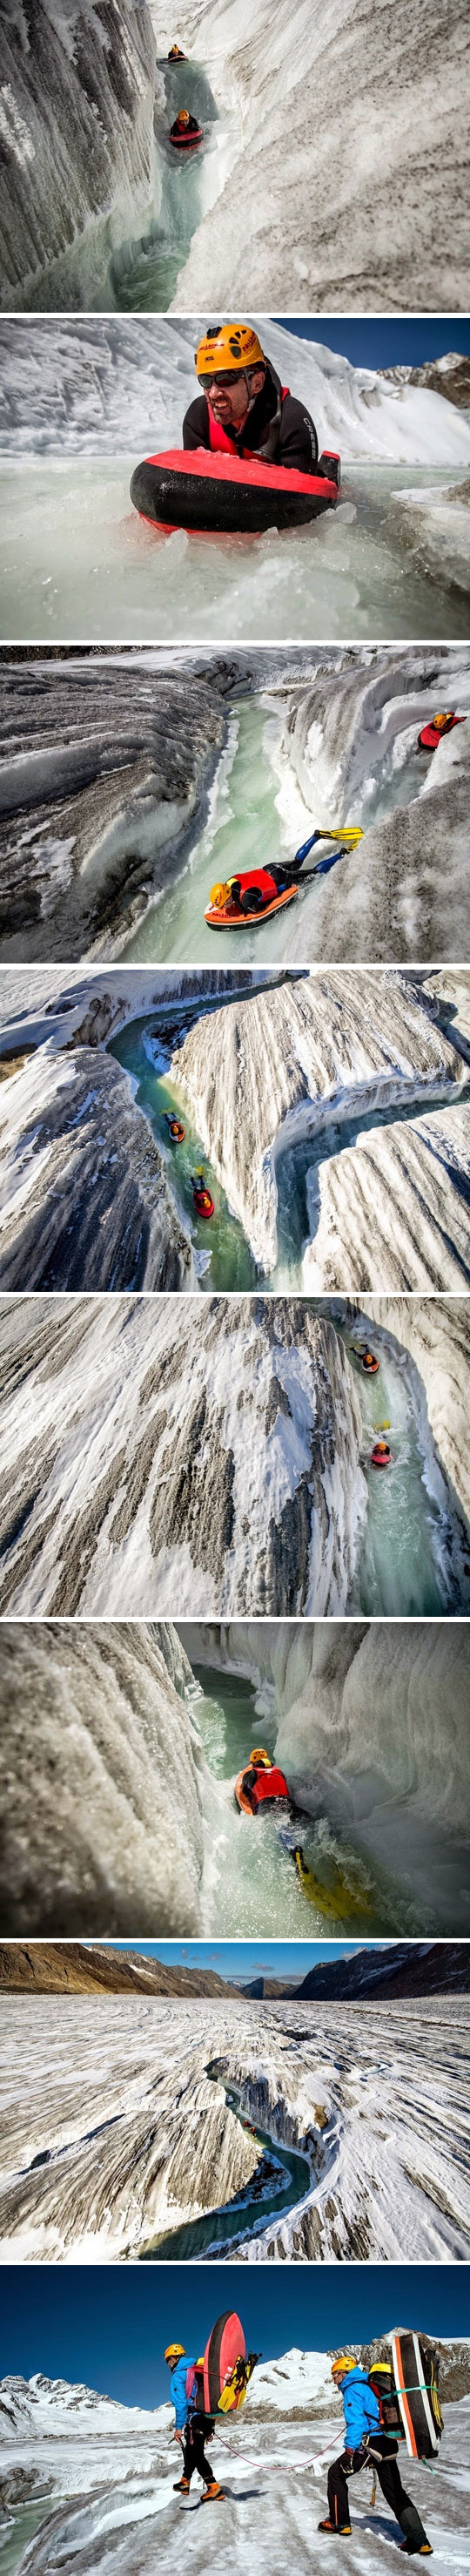 cool-glacier-water-slide-fun